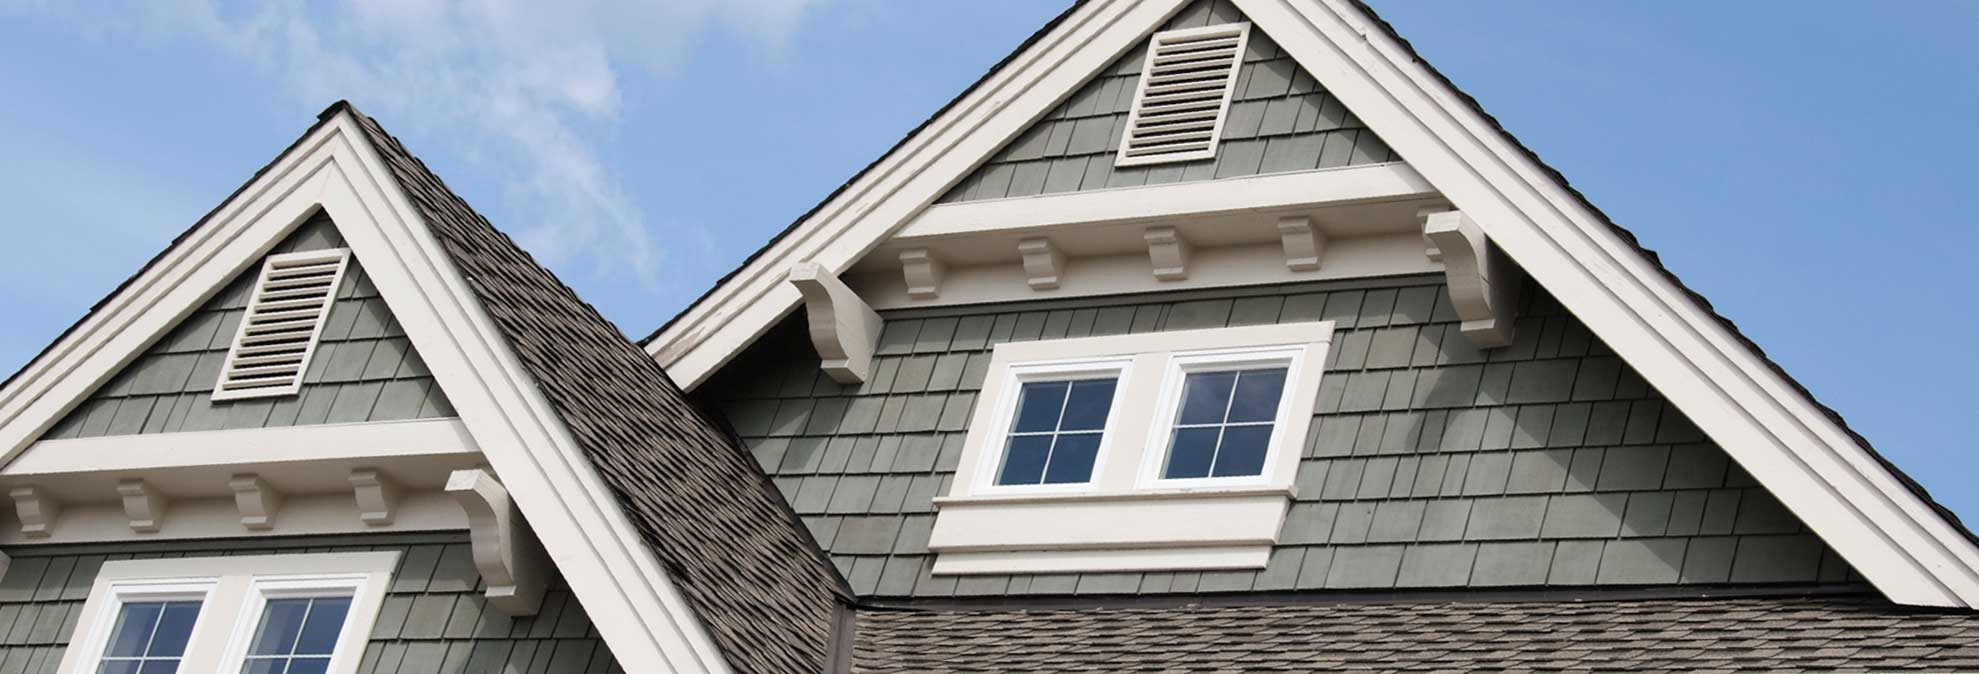 Crc Biltmore Shingles Best Roofing Buying Guide Consumer Reports